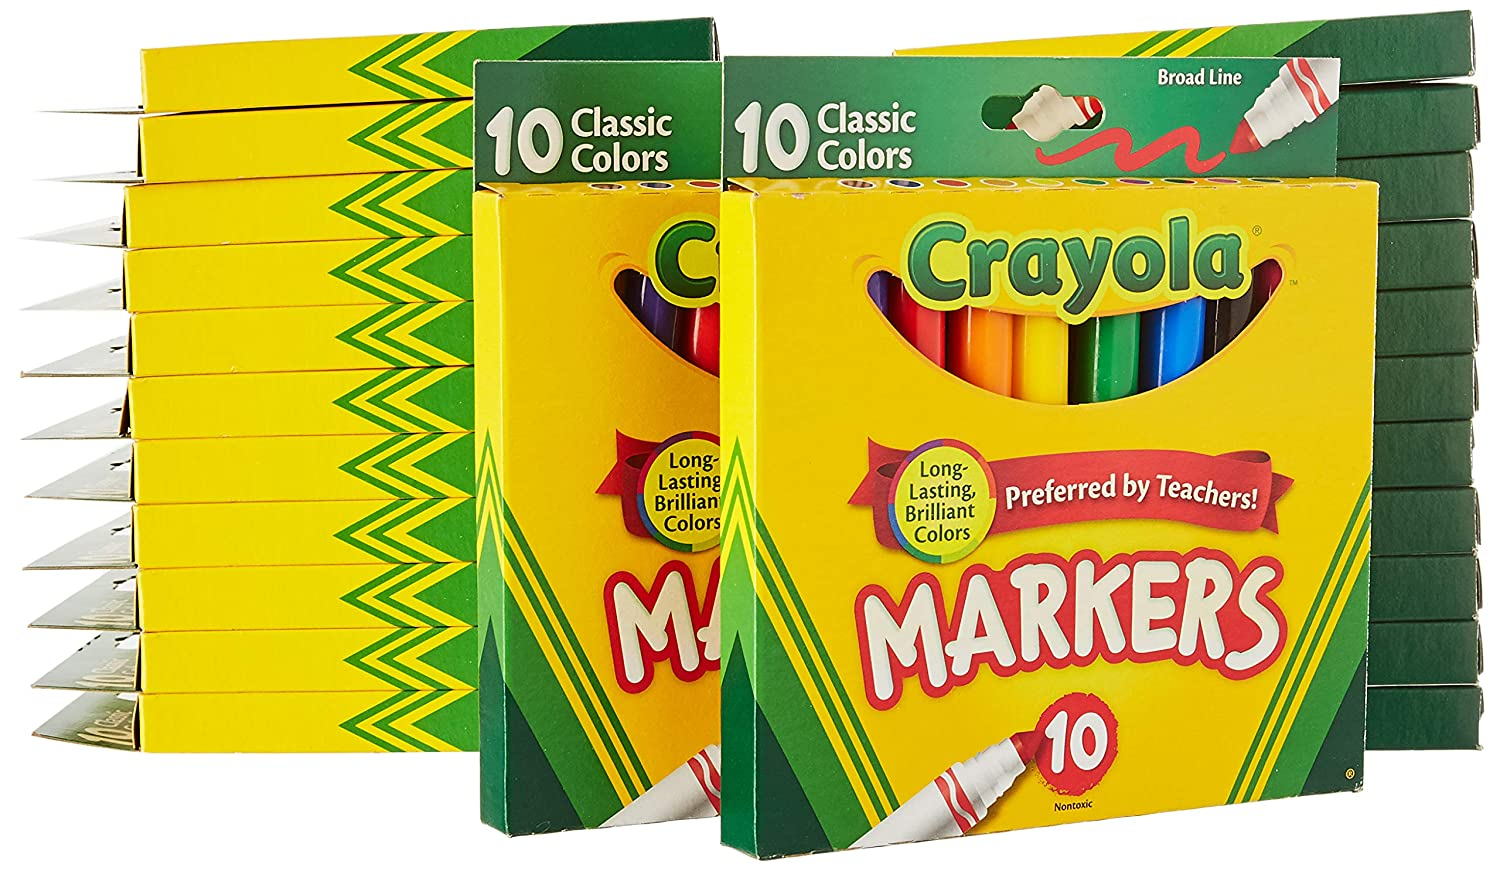 Count Crayola 758114552570 Broad Line Markers Classic Colors 10 Each Case of 24 Pack of 24